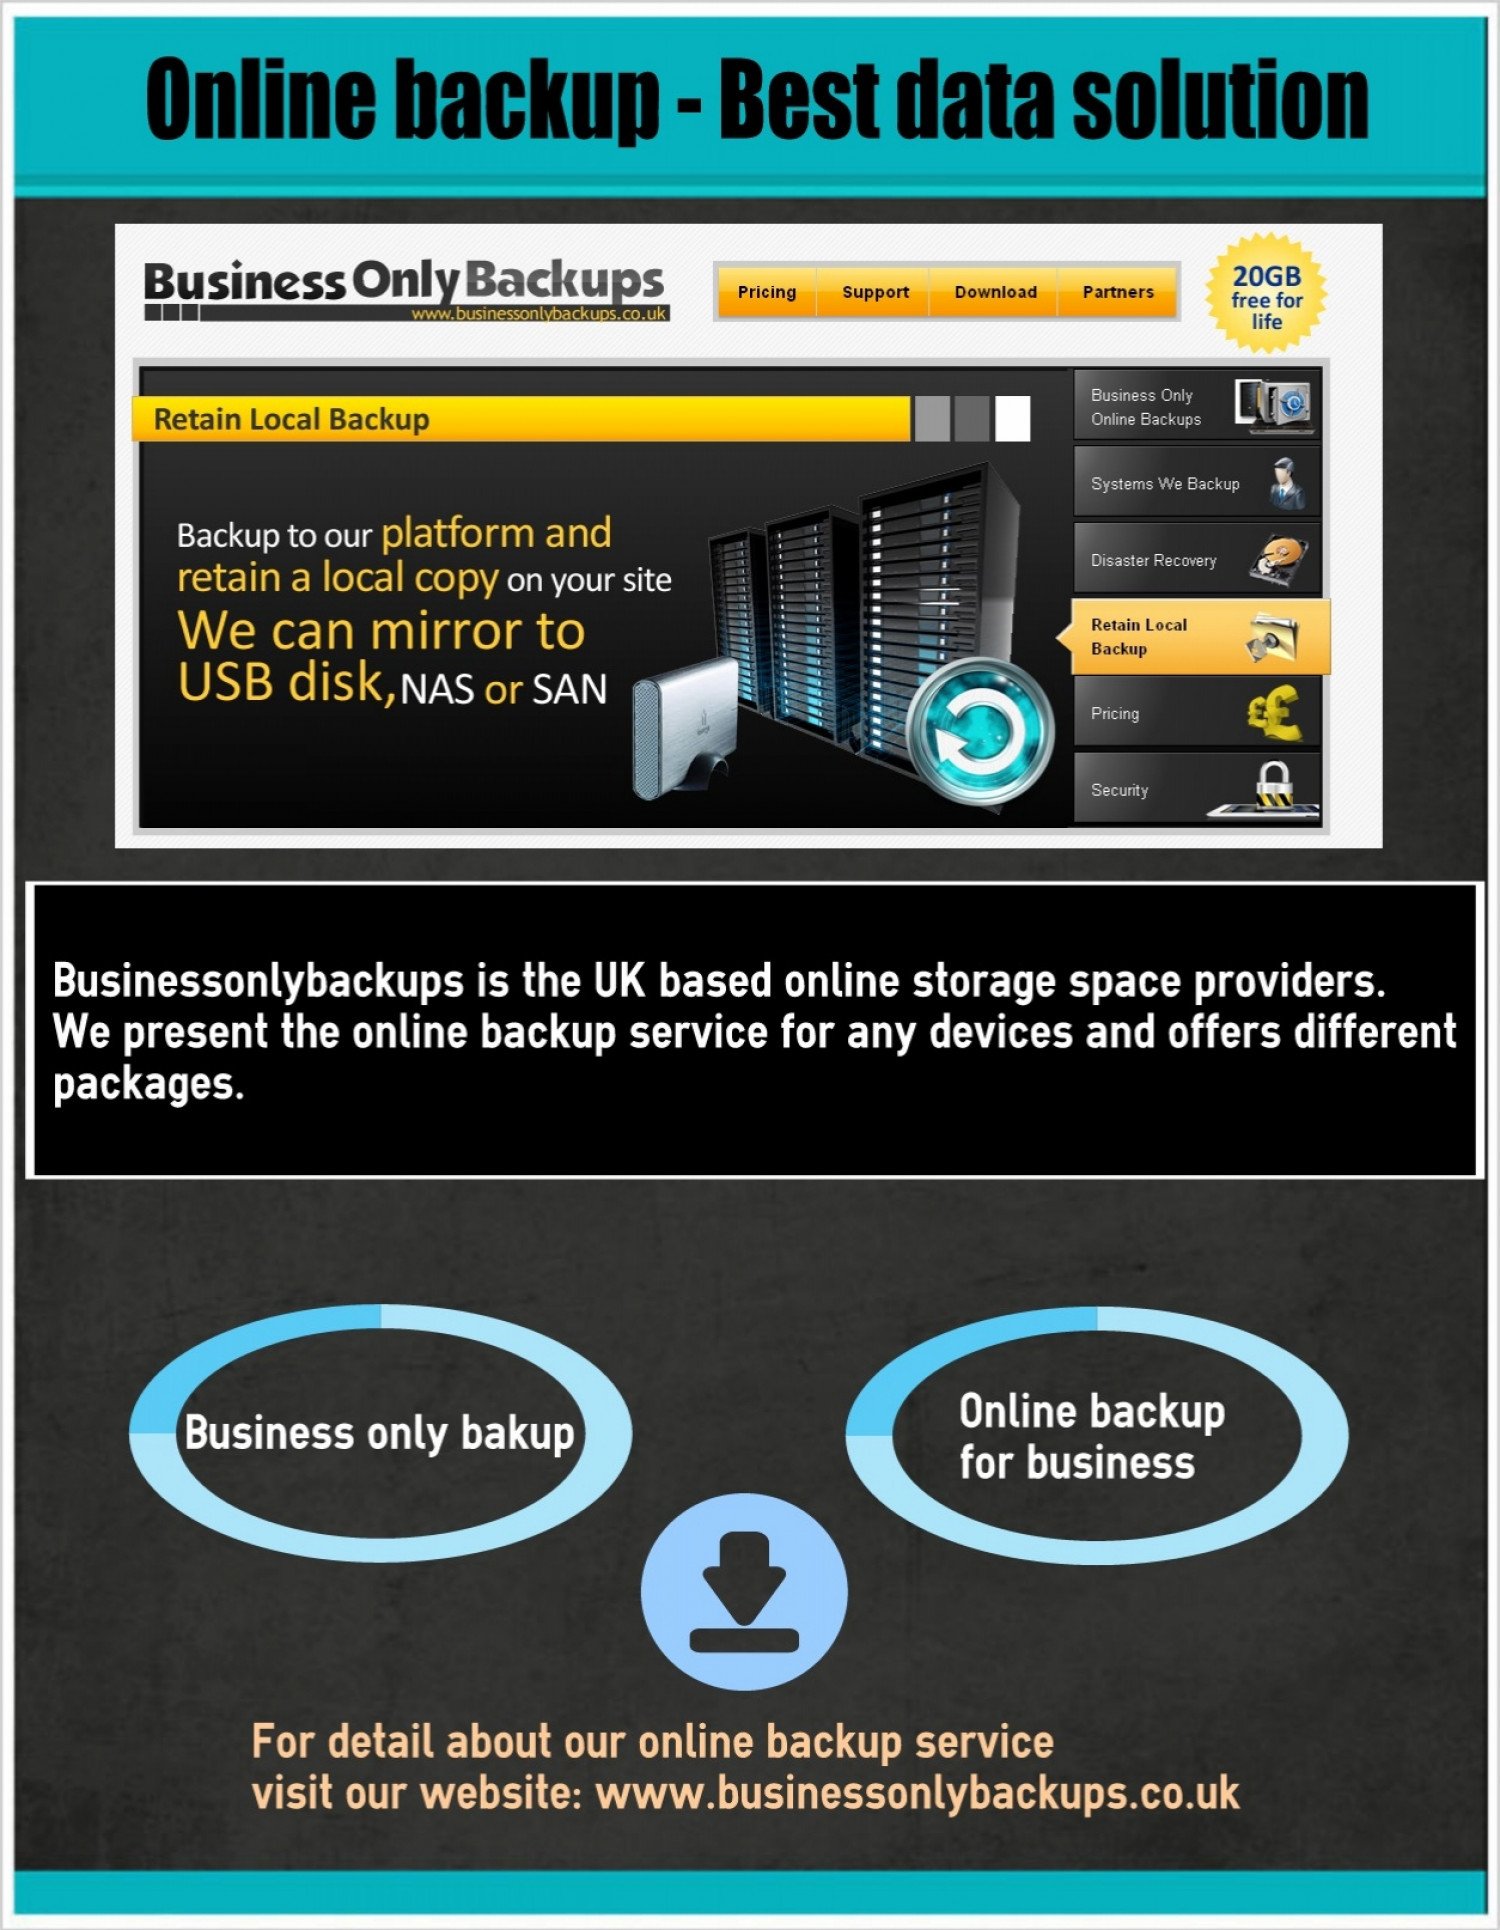 Online Backup – Best Data Solution Infographic